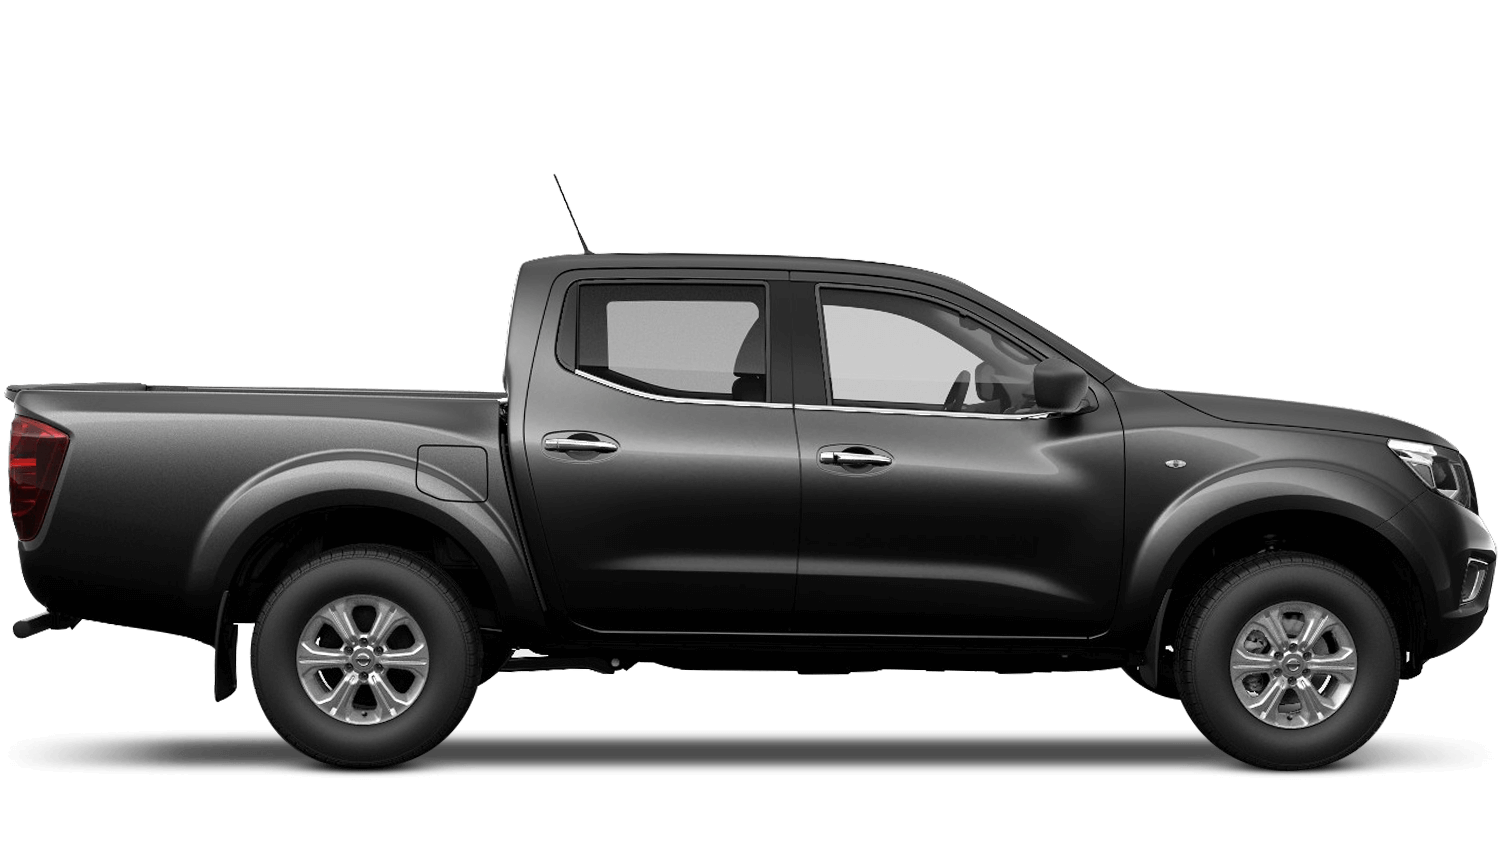 Twilight Grey Nissan Navara